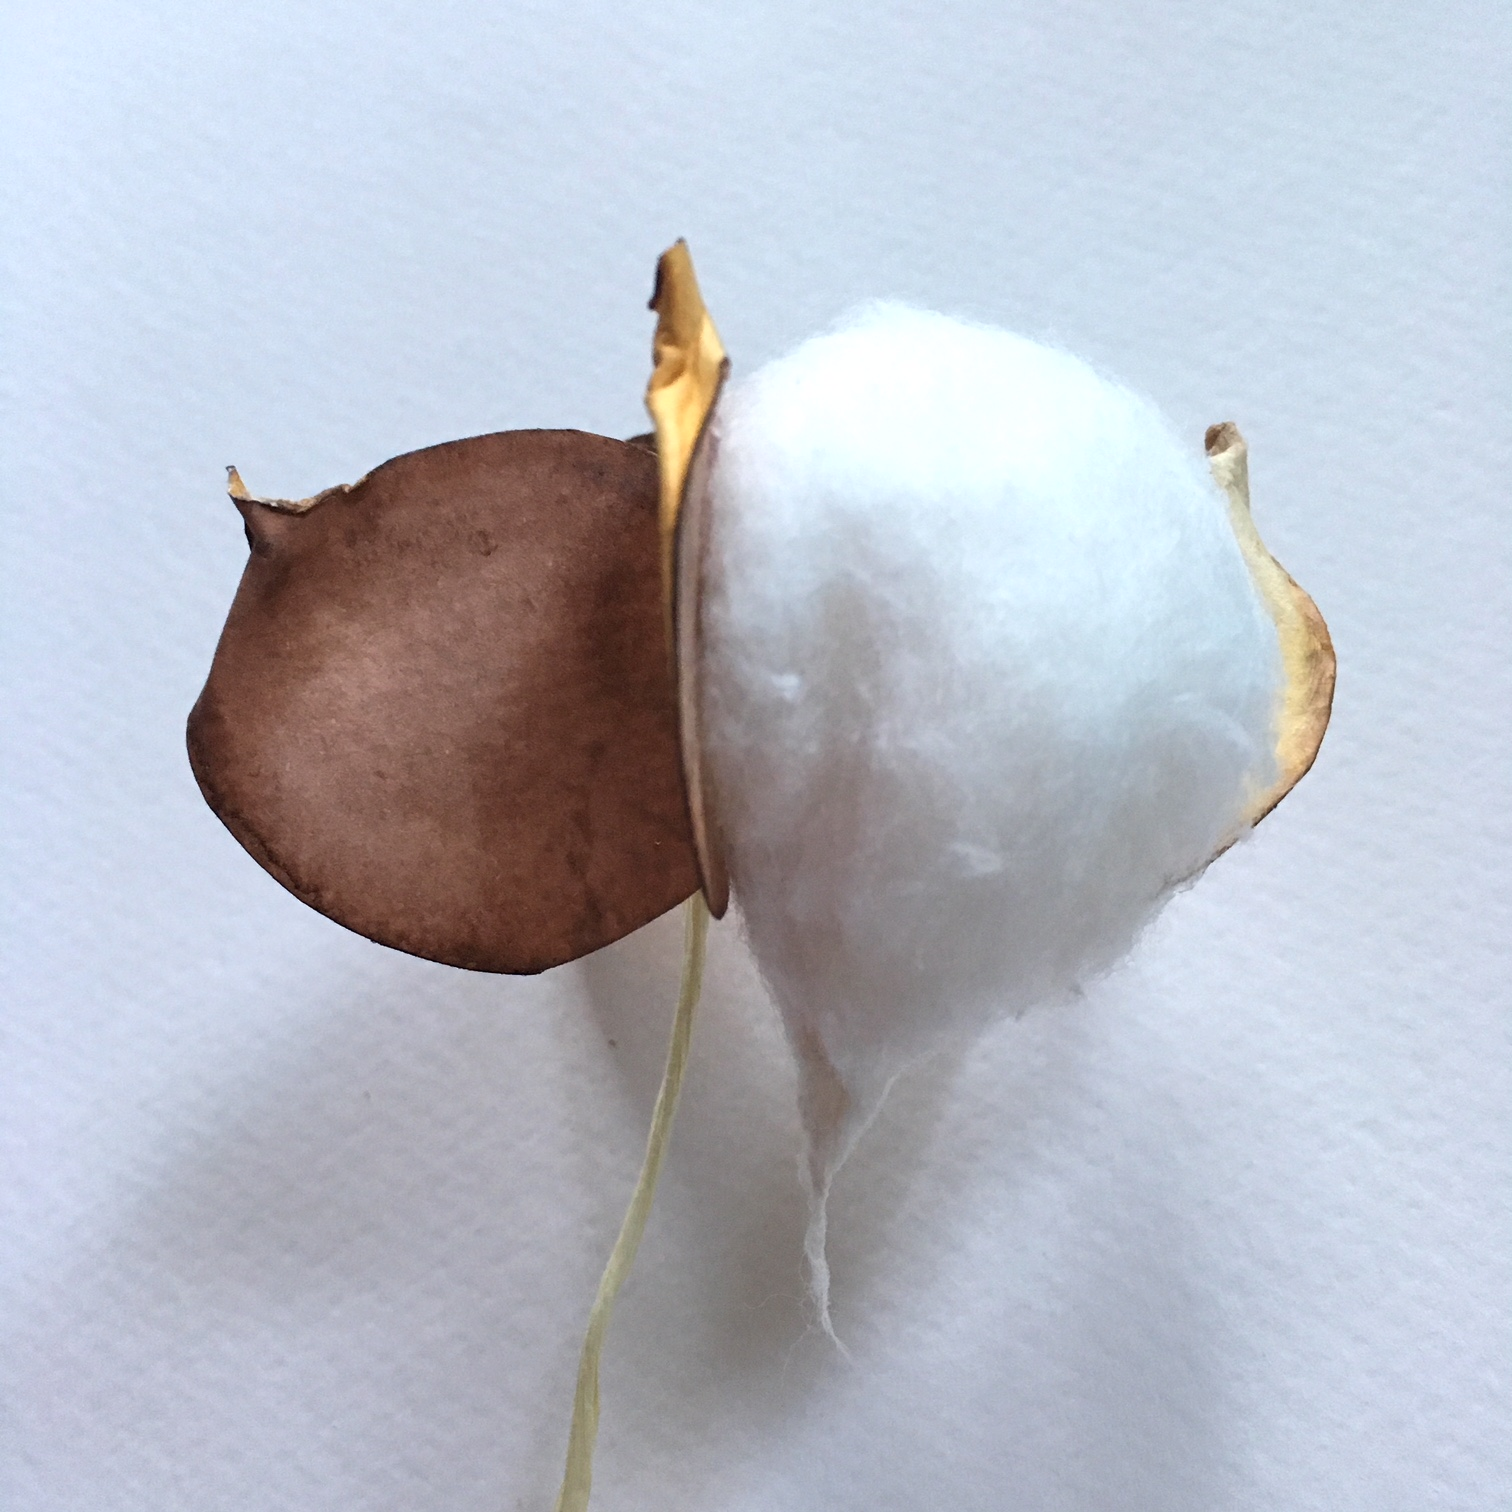 first cotton ball glued between the paper leaves